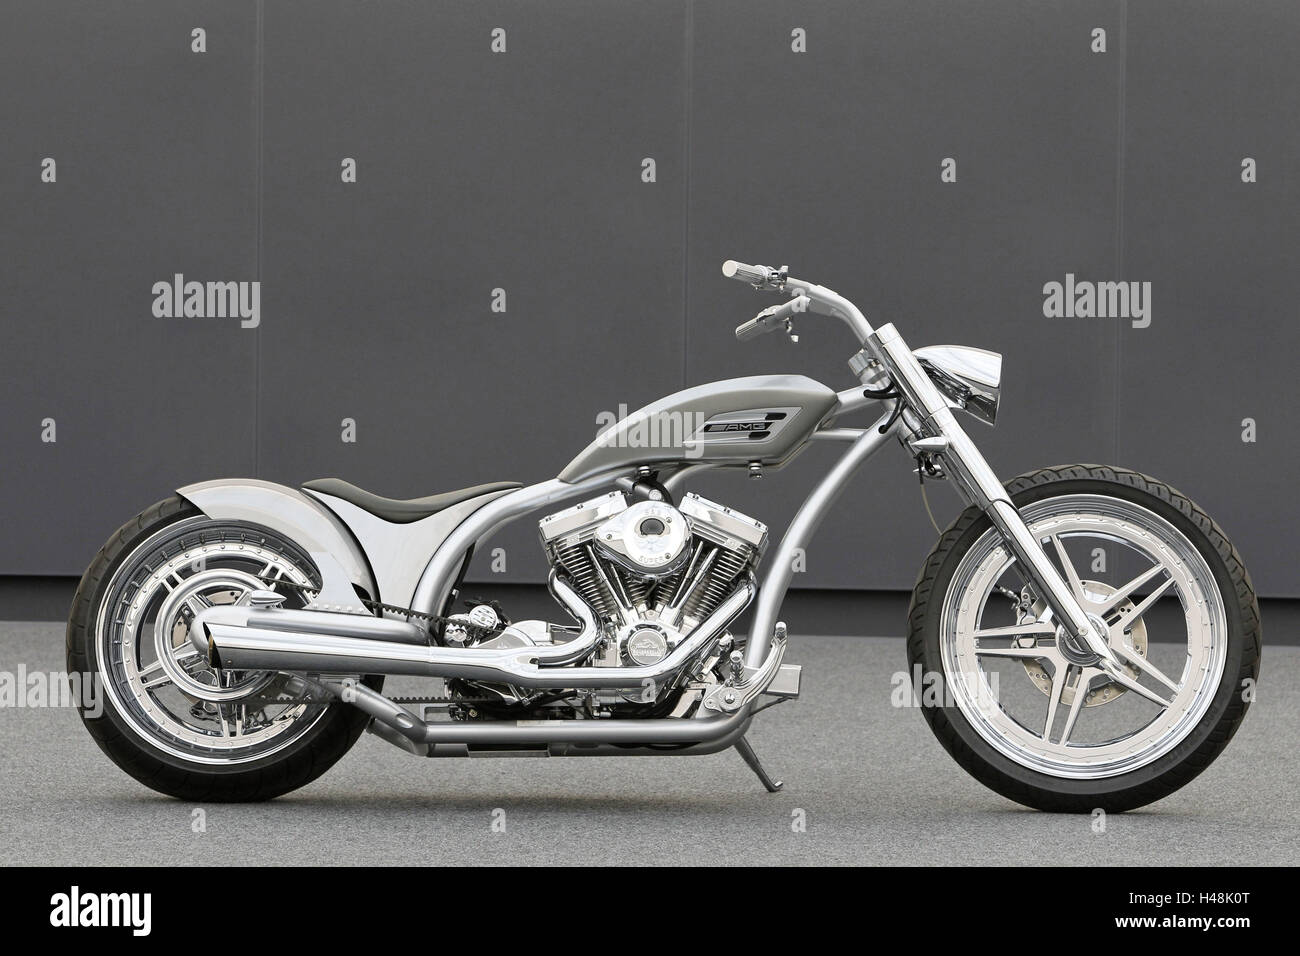 Motorcycle, chopper AMG, right side, silver, design motorcycle, - Stock Image